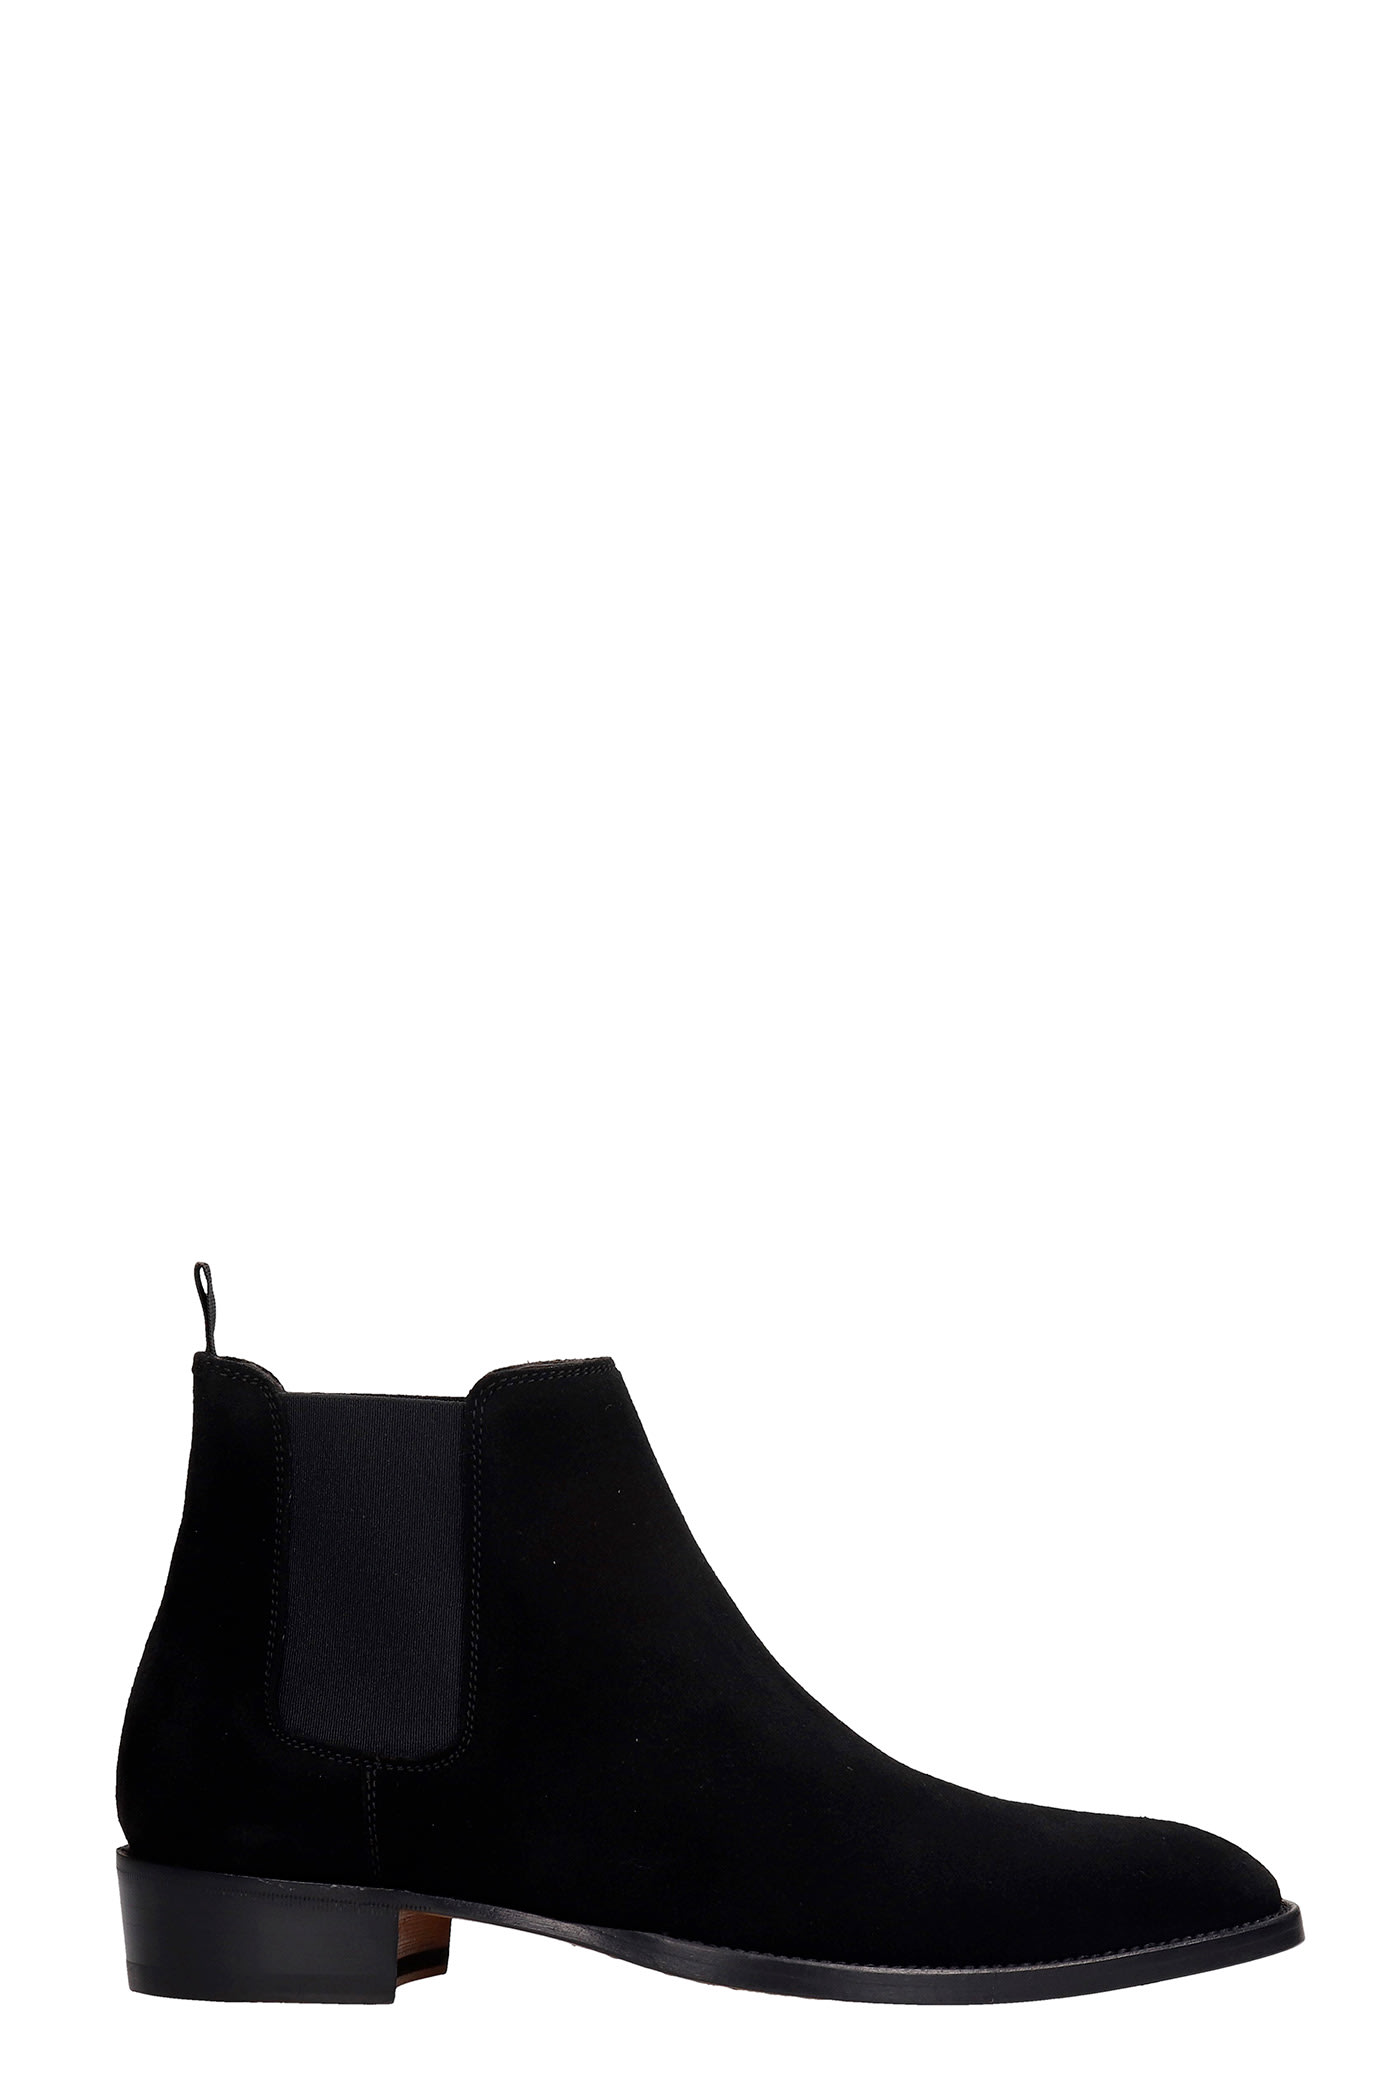 Low Heels Ankle Boots In Black Suede